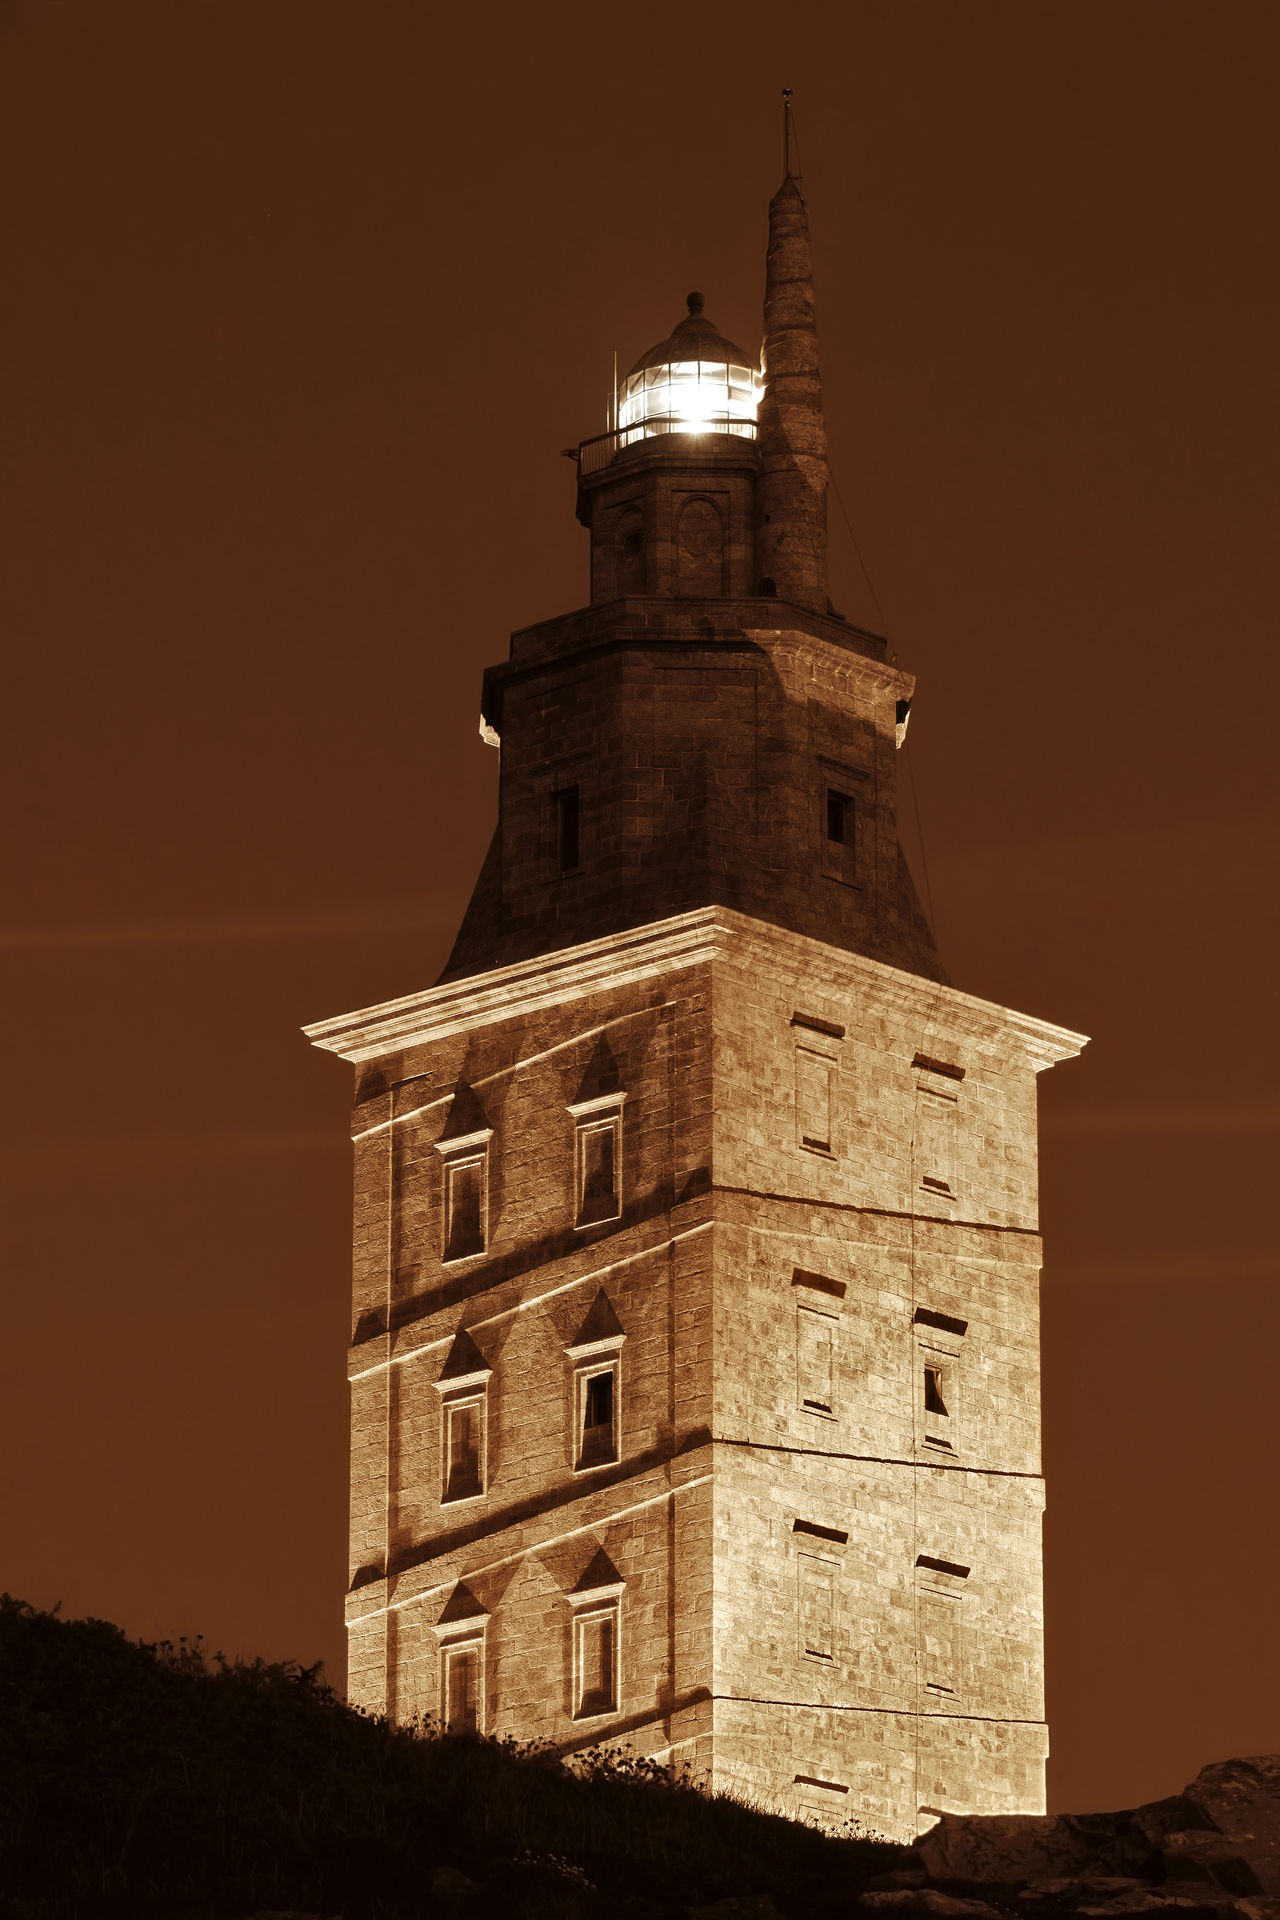 Tower of Hercules at night , sepia tone Architecture Built Structure Coruña Coruña Galicia Sain Galicia Galicia Spain History Illuminated Lighthouse Moon Night Night Photography No People Roman Architecture Sepia Tone Loving Sepia Toned Sky Torre De Hércules Tower Tower Of Hercules Unesco UNESCO World Heritage Site World Heritage